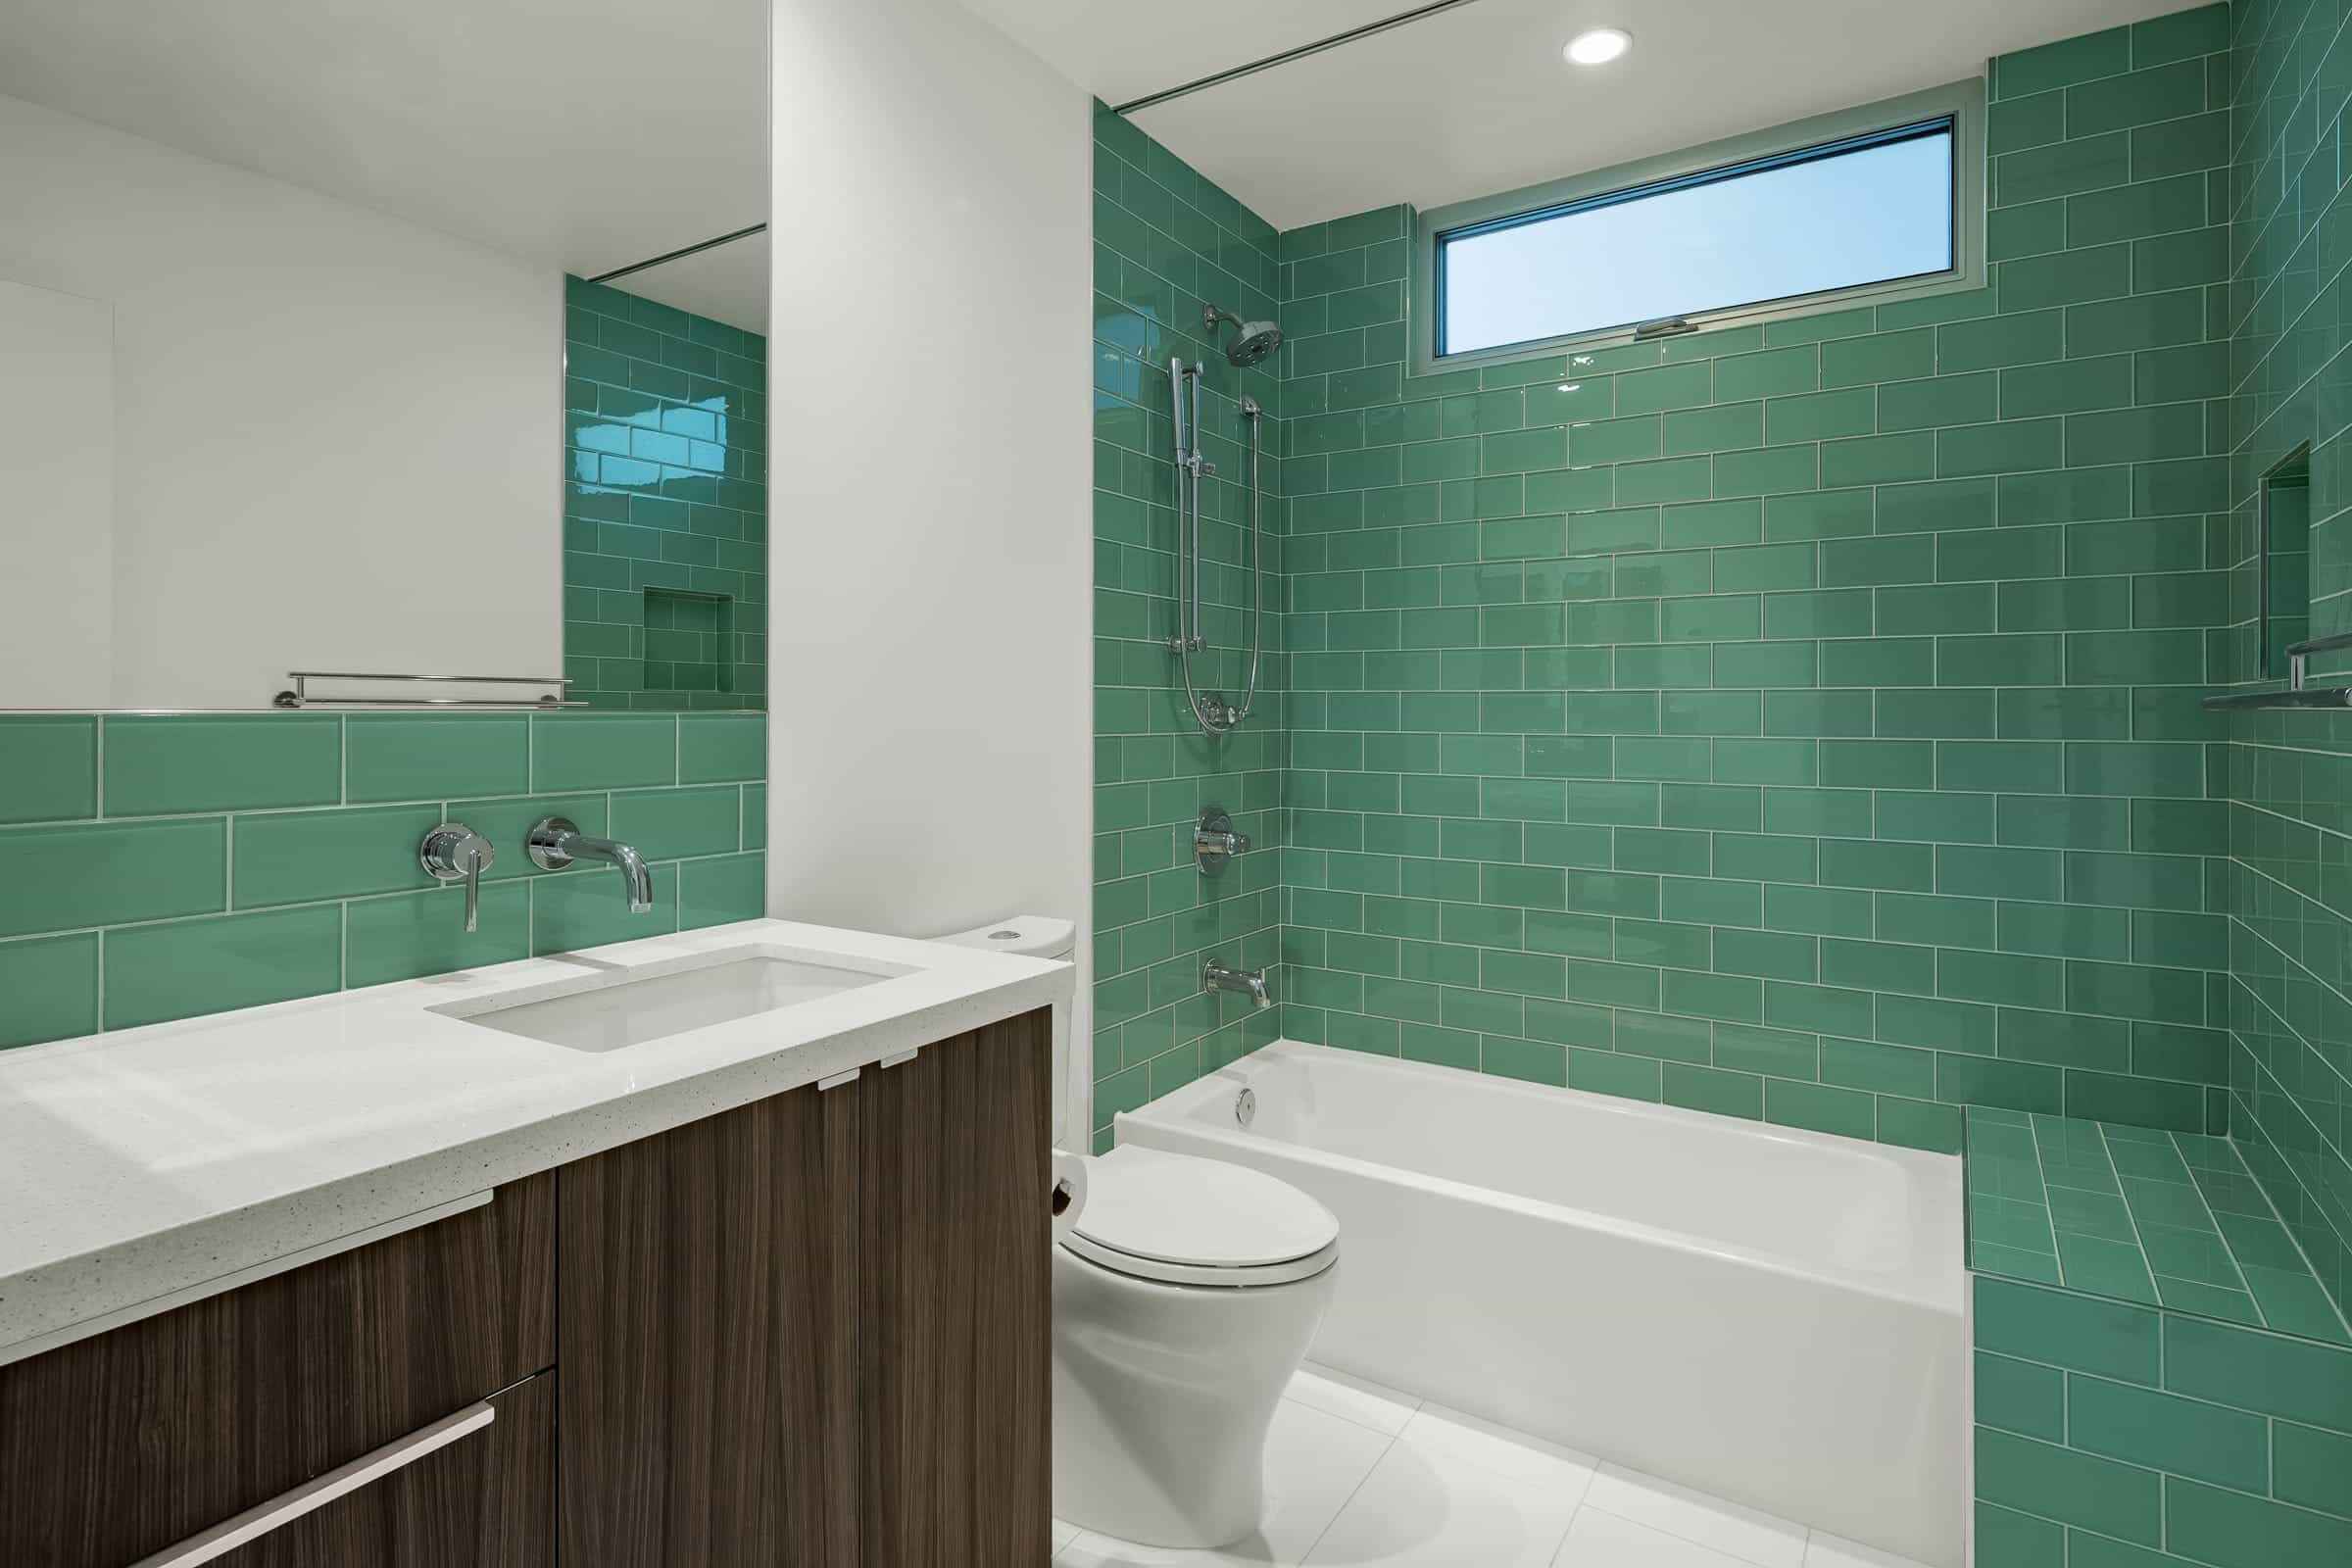 Beauty Bold Modern Bathroom With Green Turquoise Glass Tiles (Image 2 of 12)